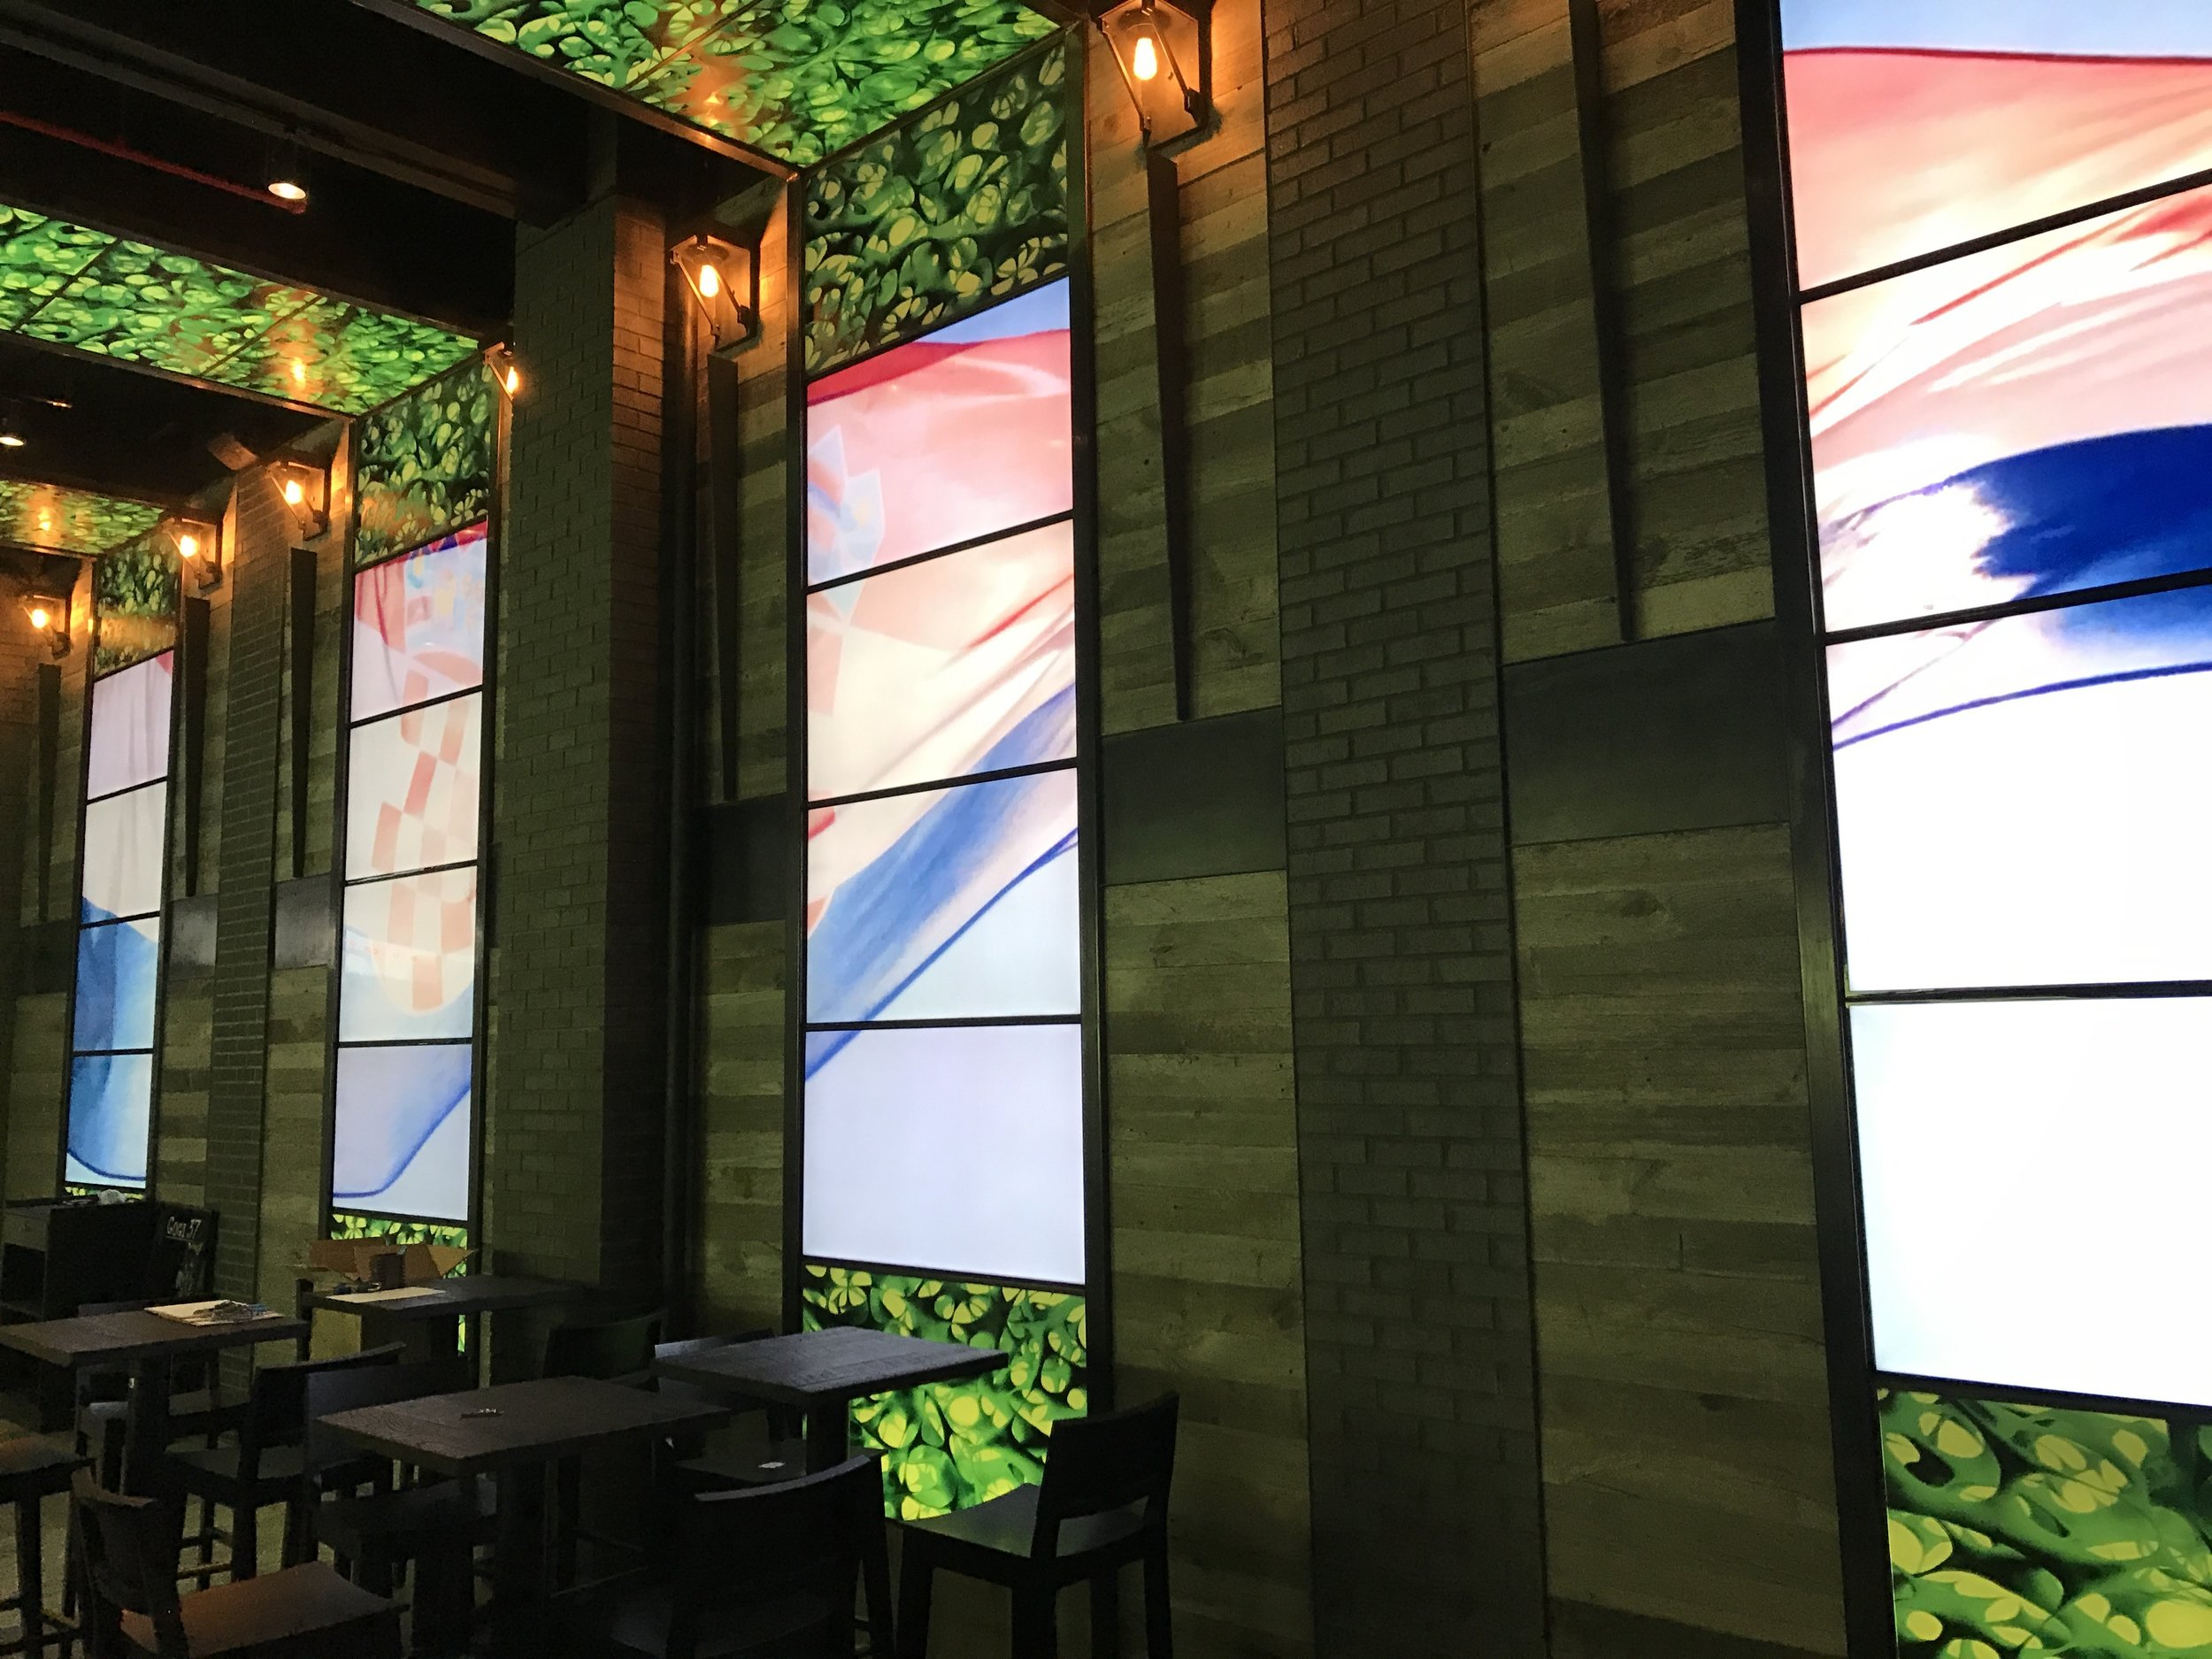 Video Wall System, Gogi37, New York